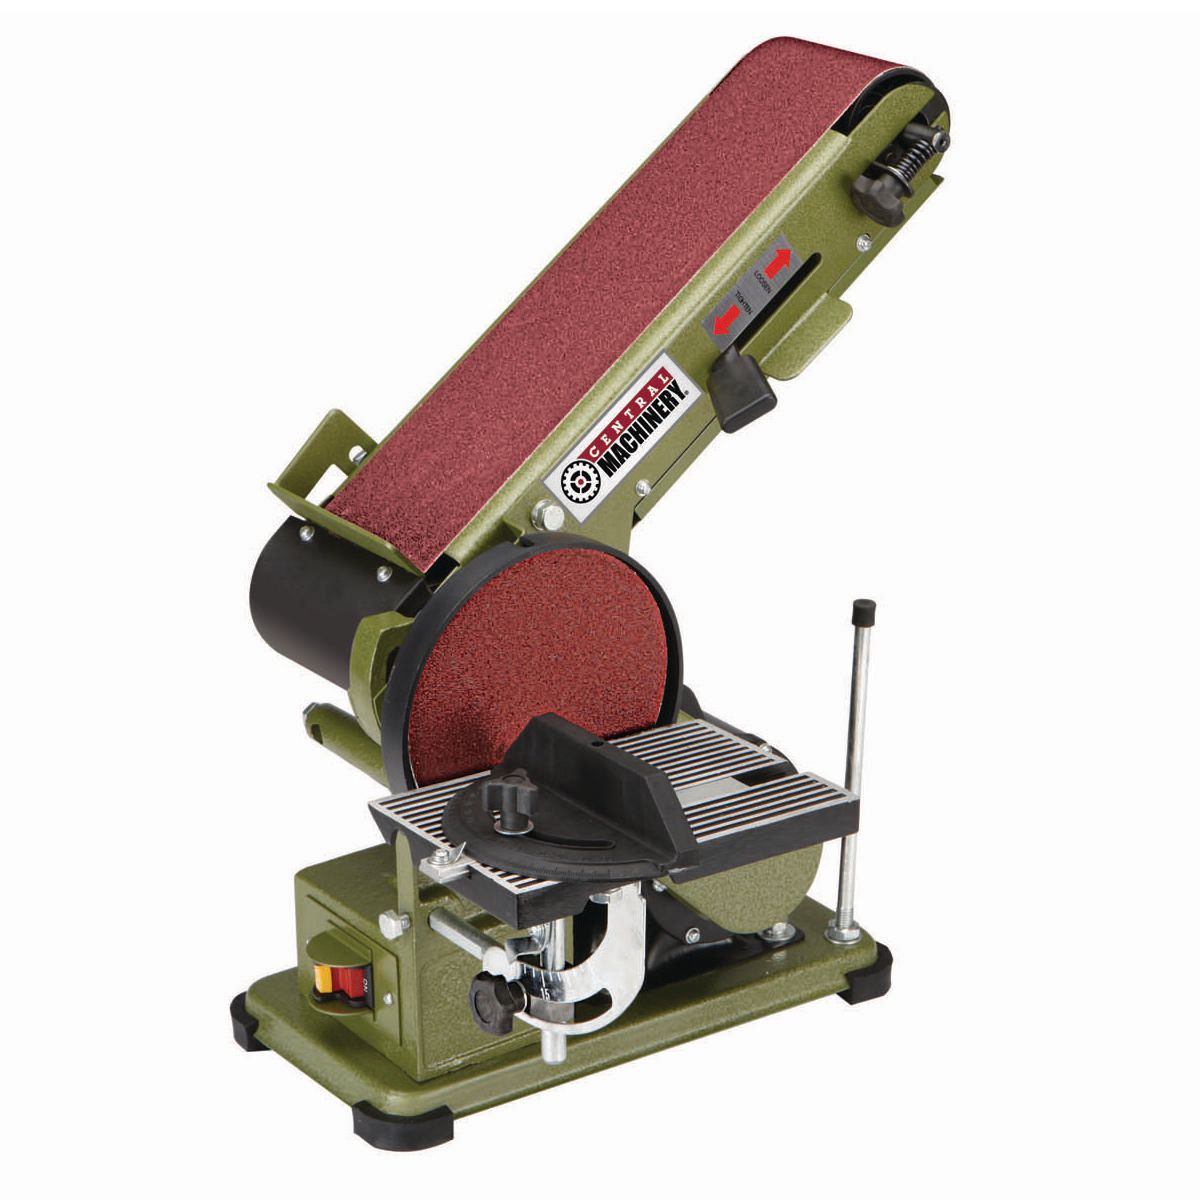 Combination 4 X 36 Belt 6 Disc Sander